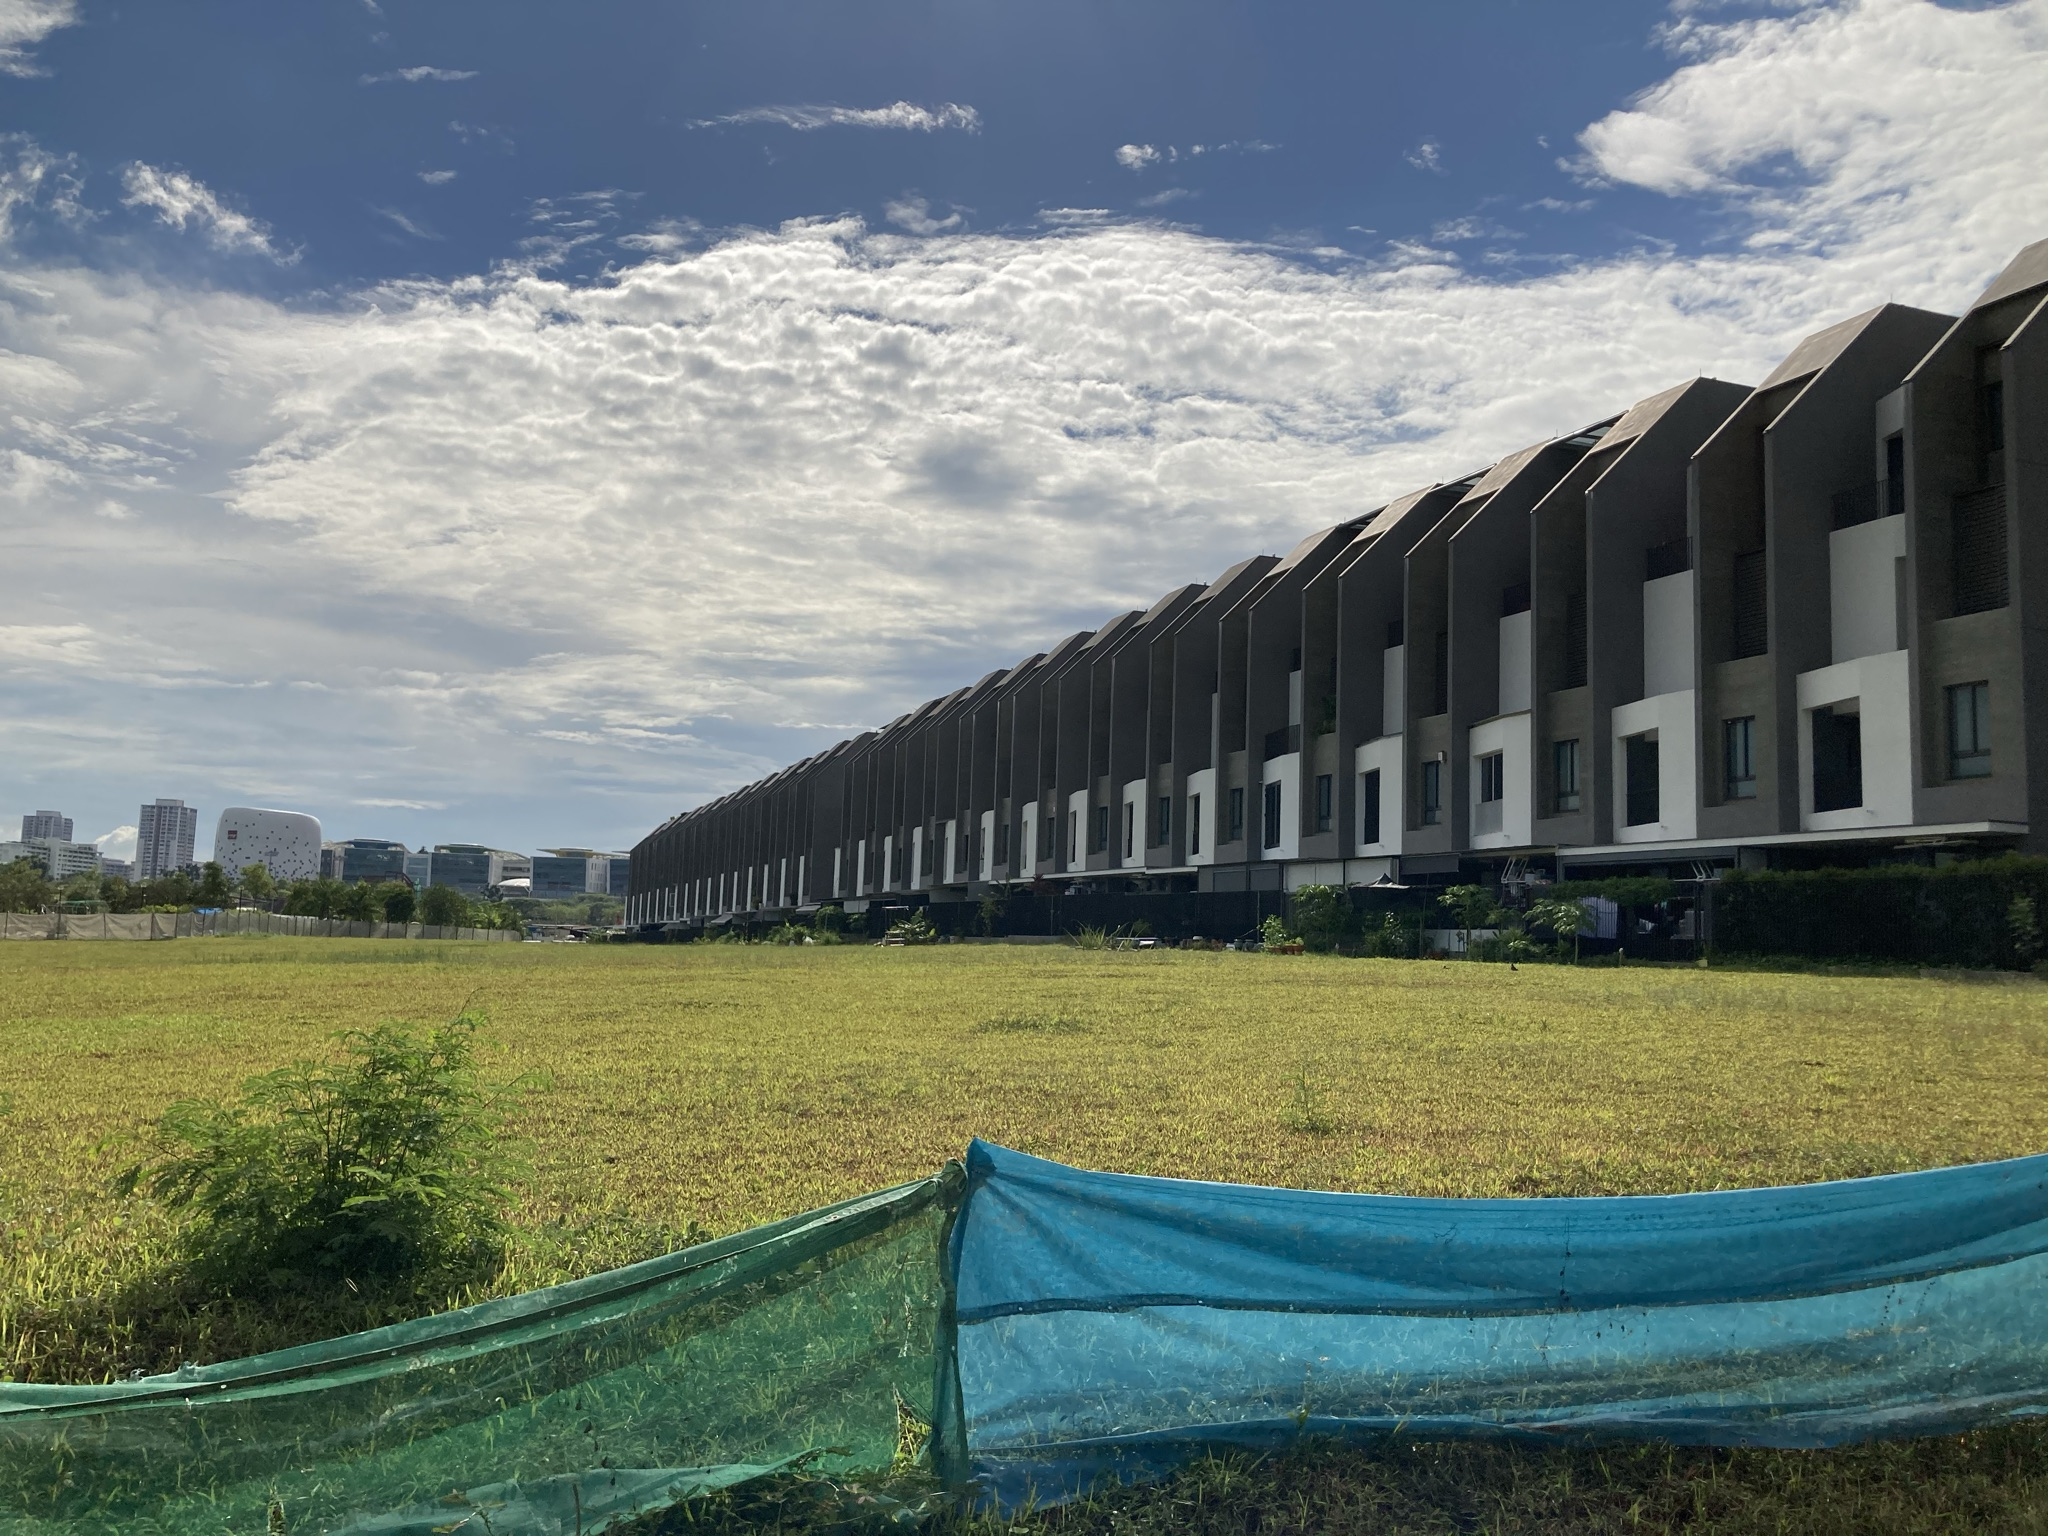 Belgravia Ace freehold landed houses at Belgravia Drive at Seletar by Tong Eng Group